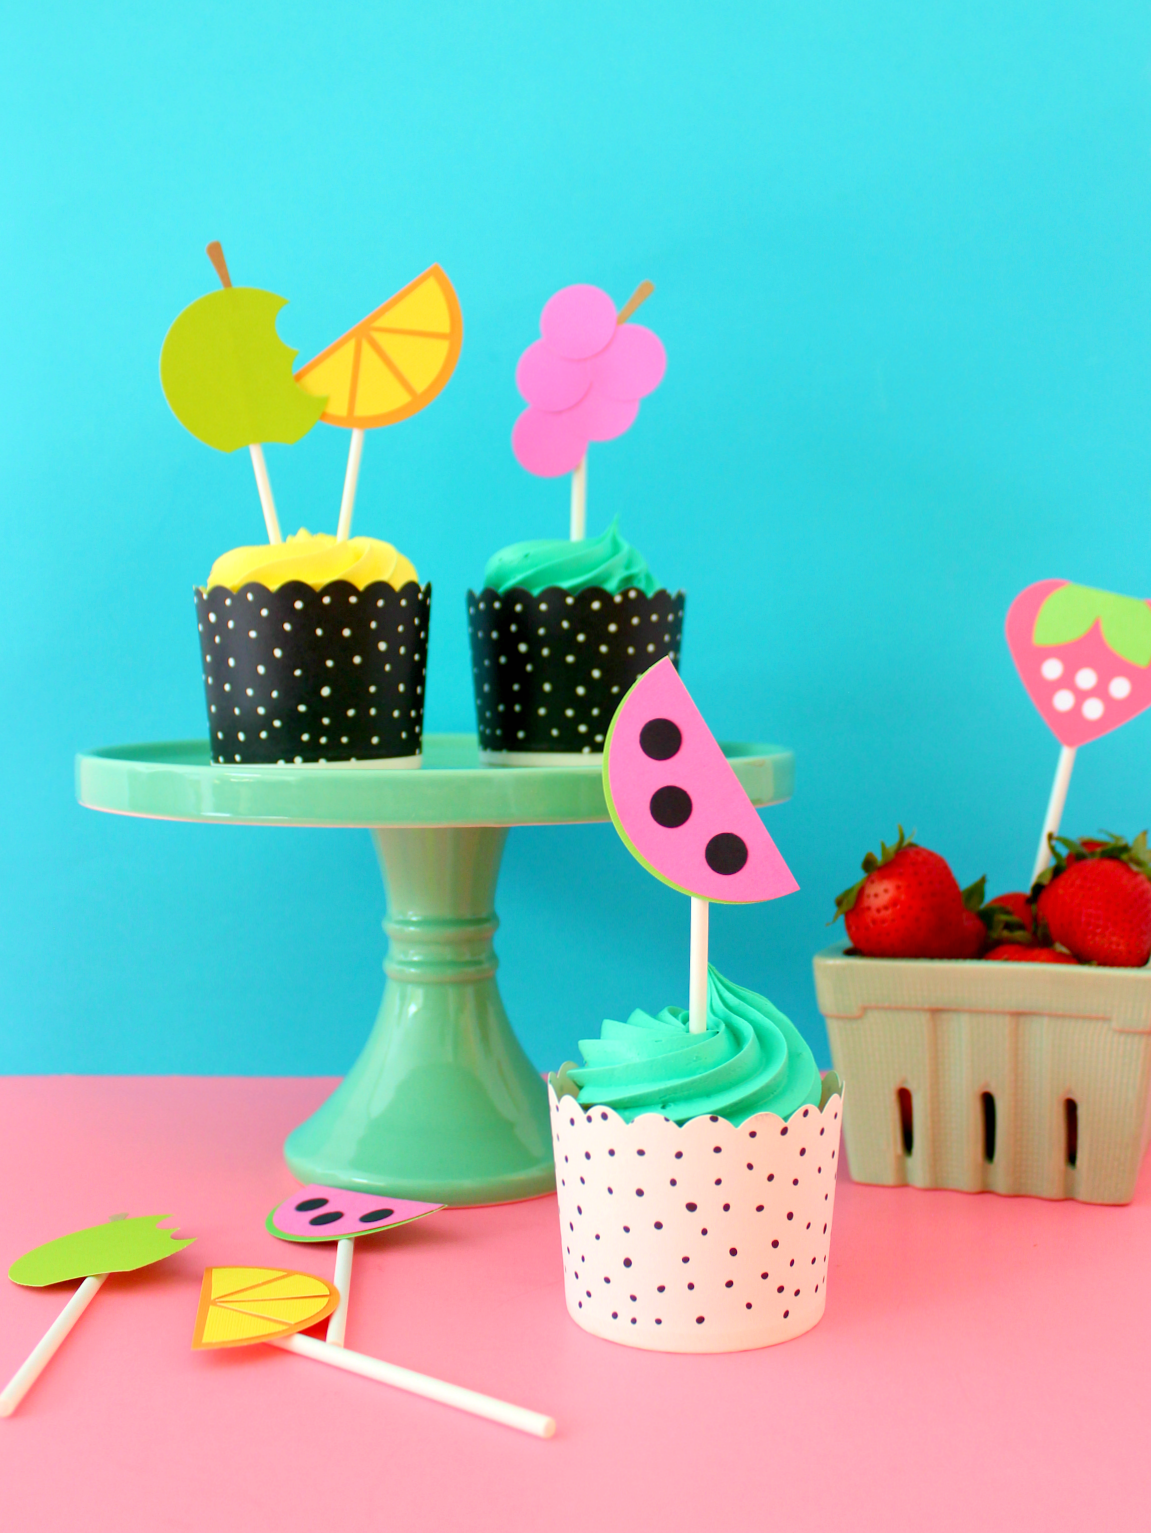 USING CRAFT PUNCHES TO MAKE FRUITY CUPCAKE TOPPERS